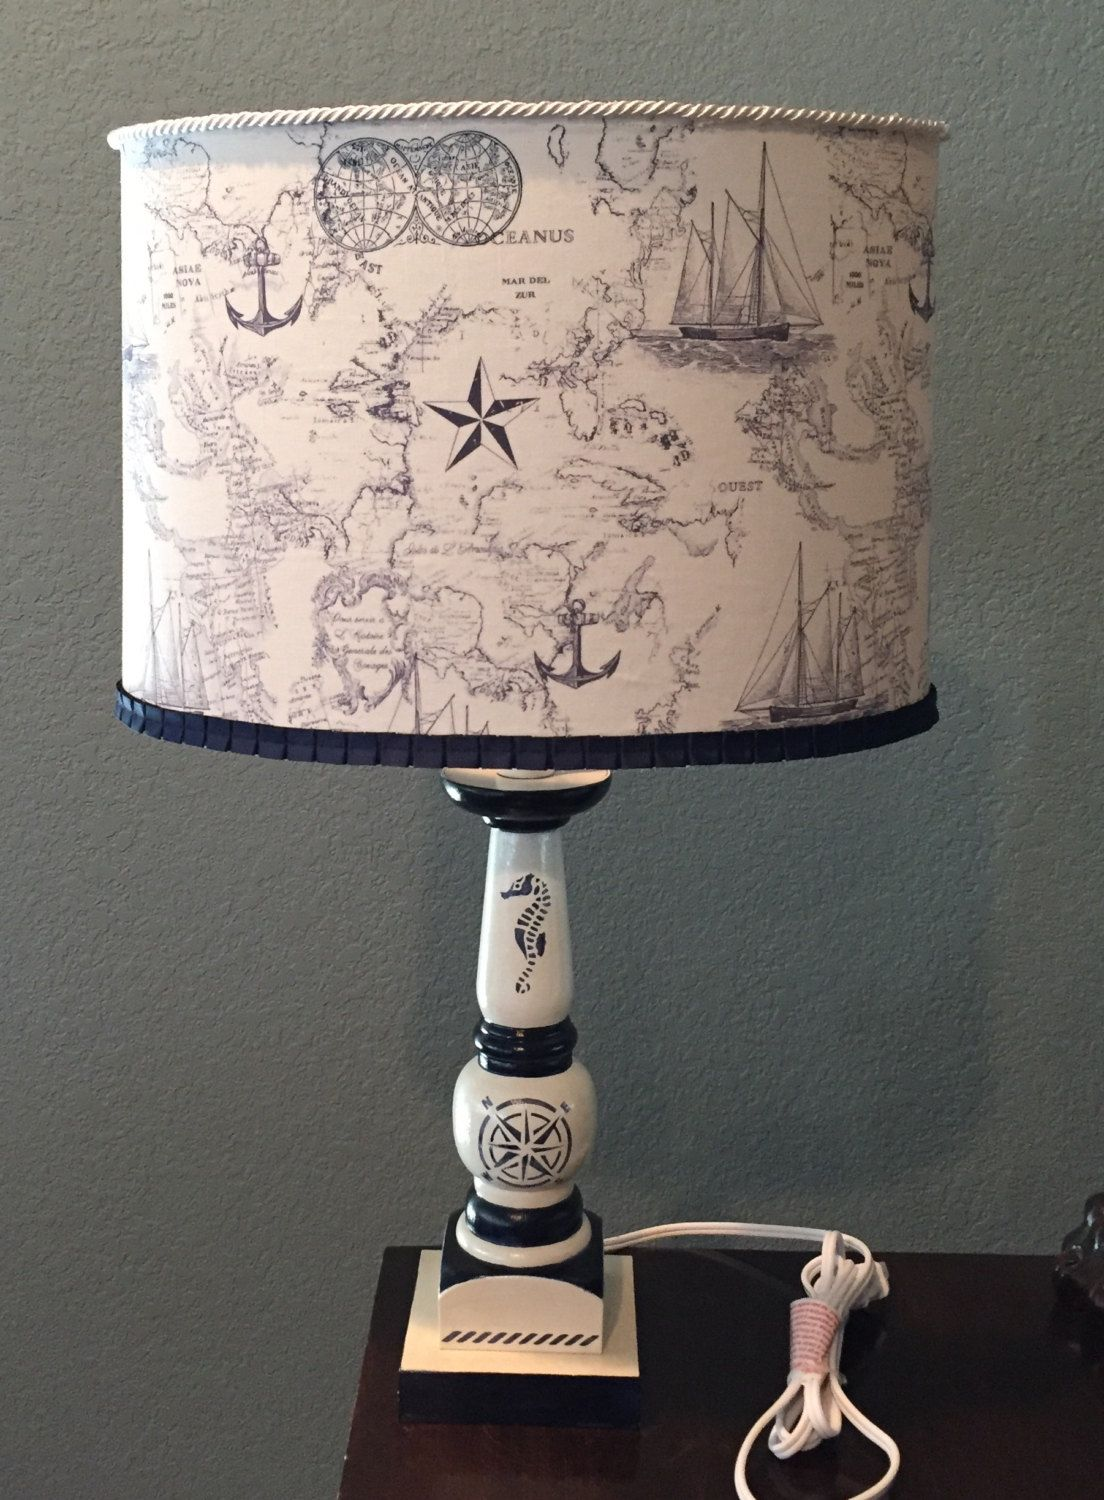 Nautical Theme Hand Painted Lamp With Handmade Fabric Lampshade By Holychicboutiqueco On Etsy Painting Lamps Lamp Fabric Lampshade